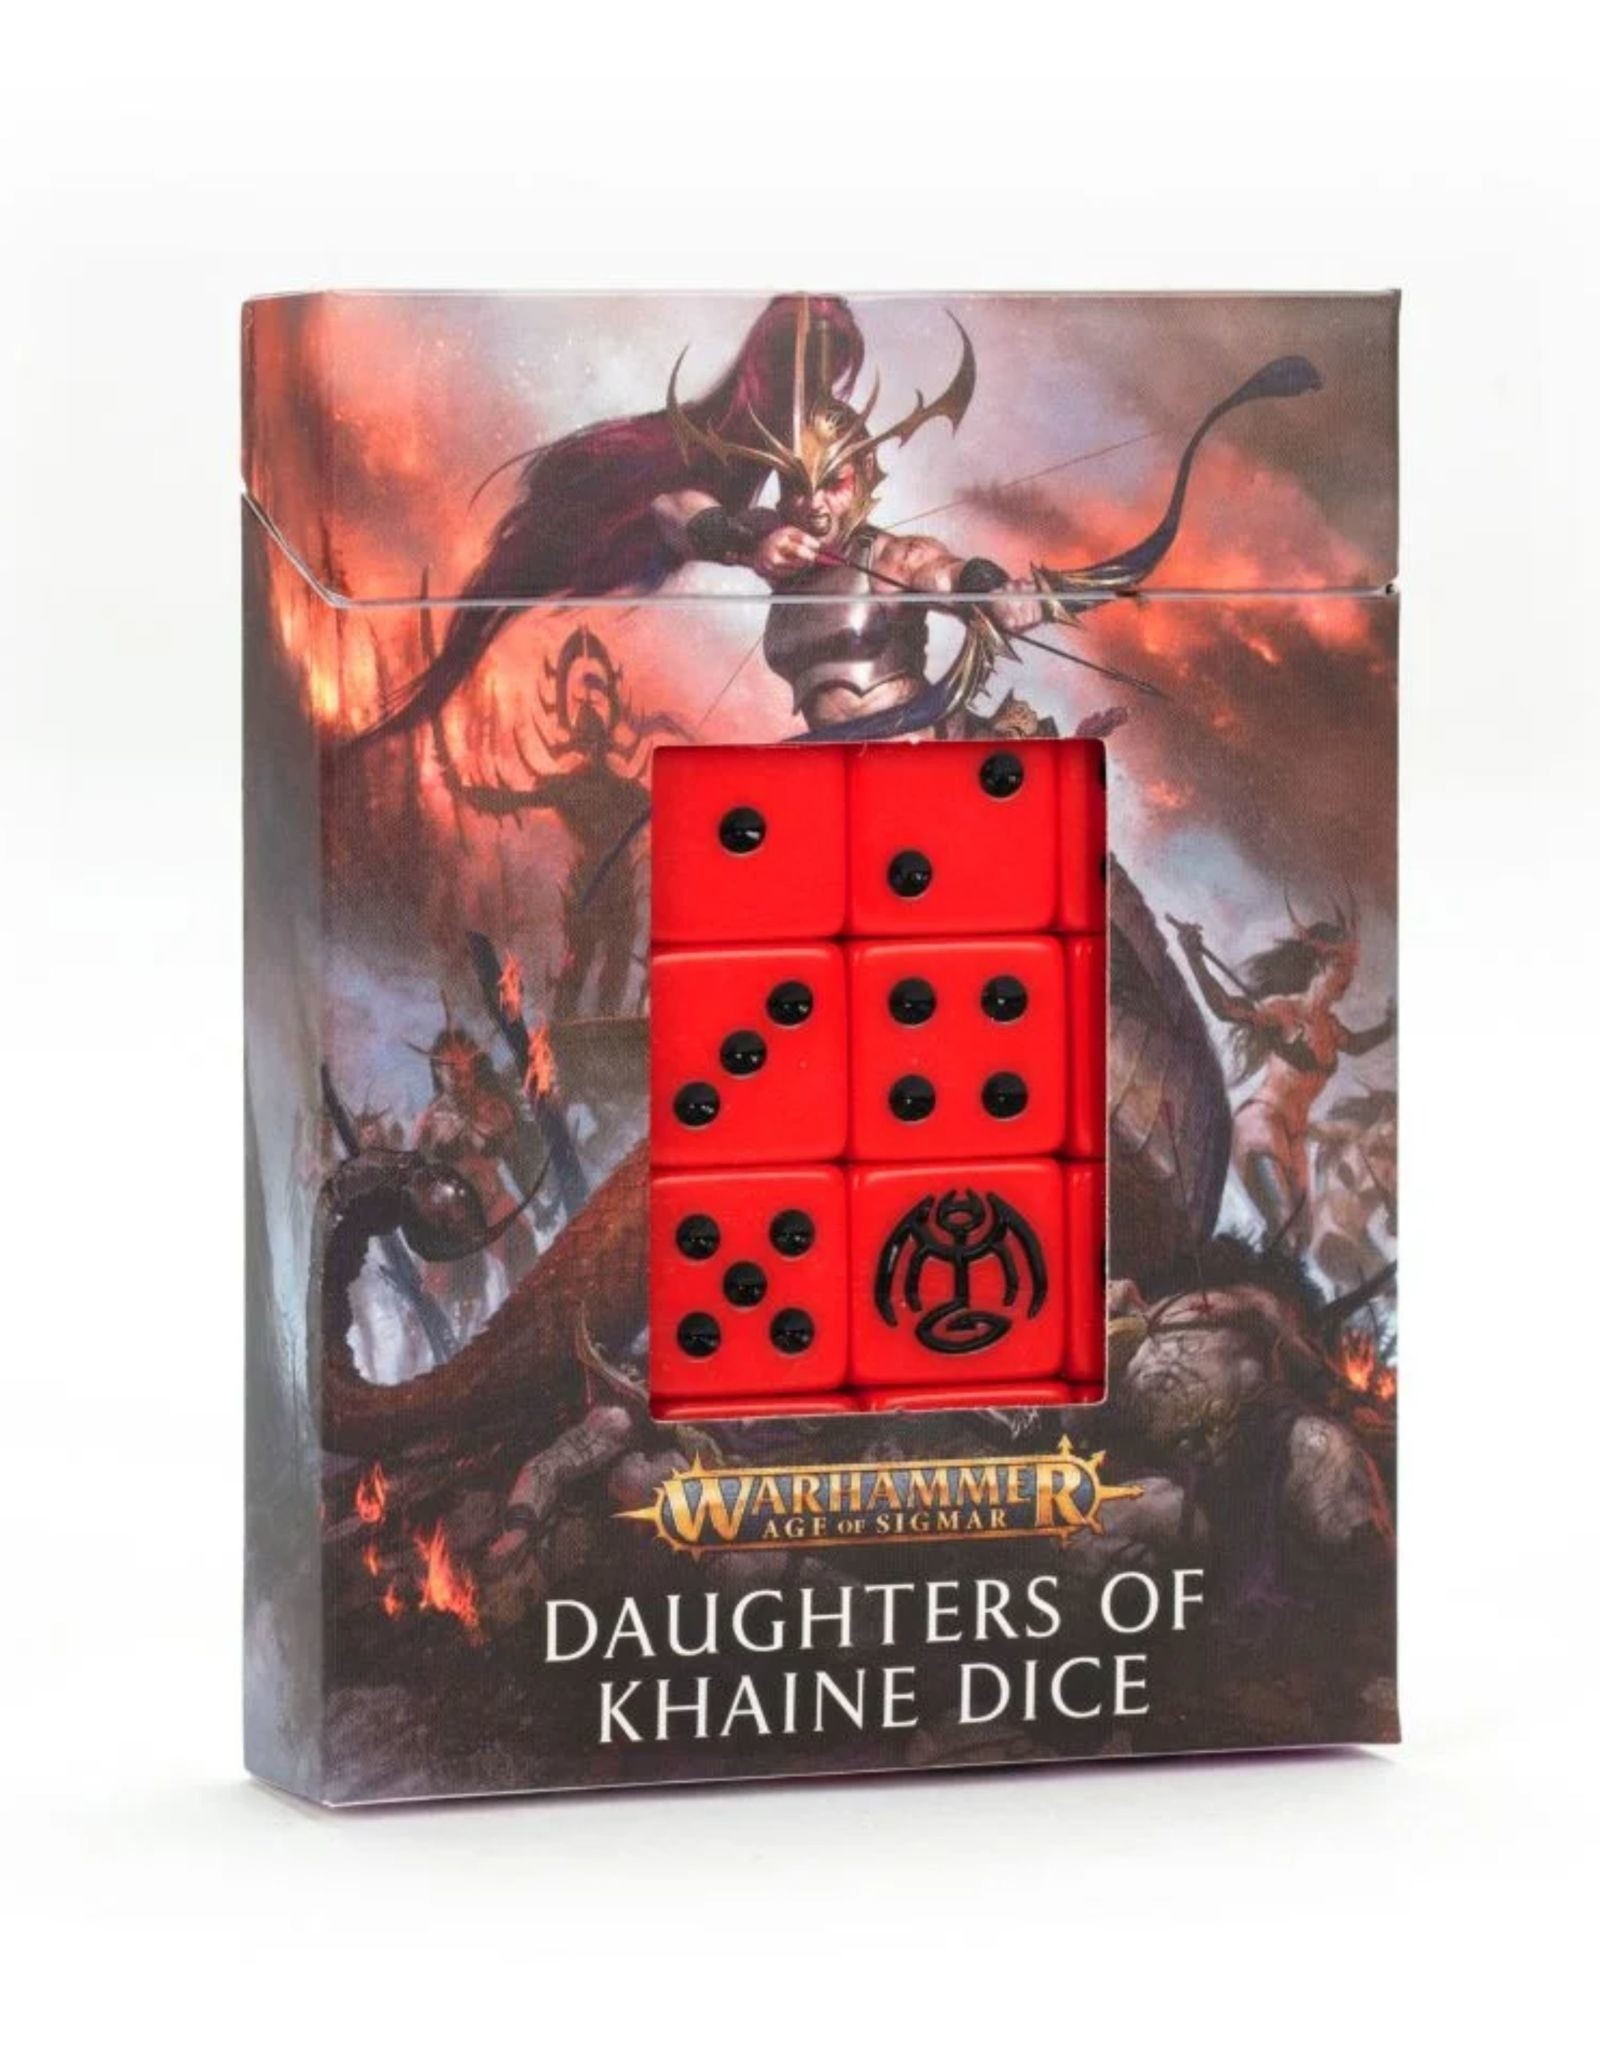 Age of Sigmar Daughters of Khaine Dice